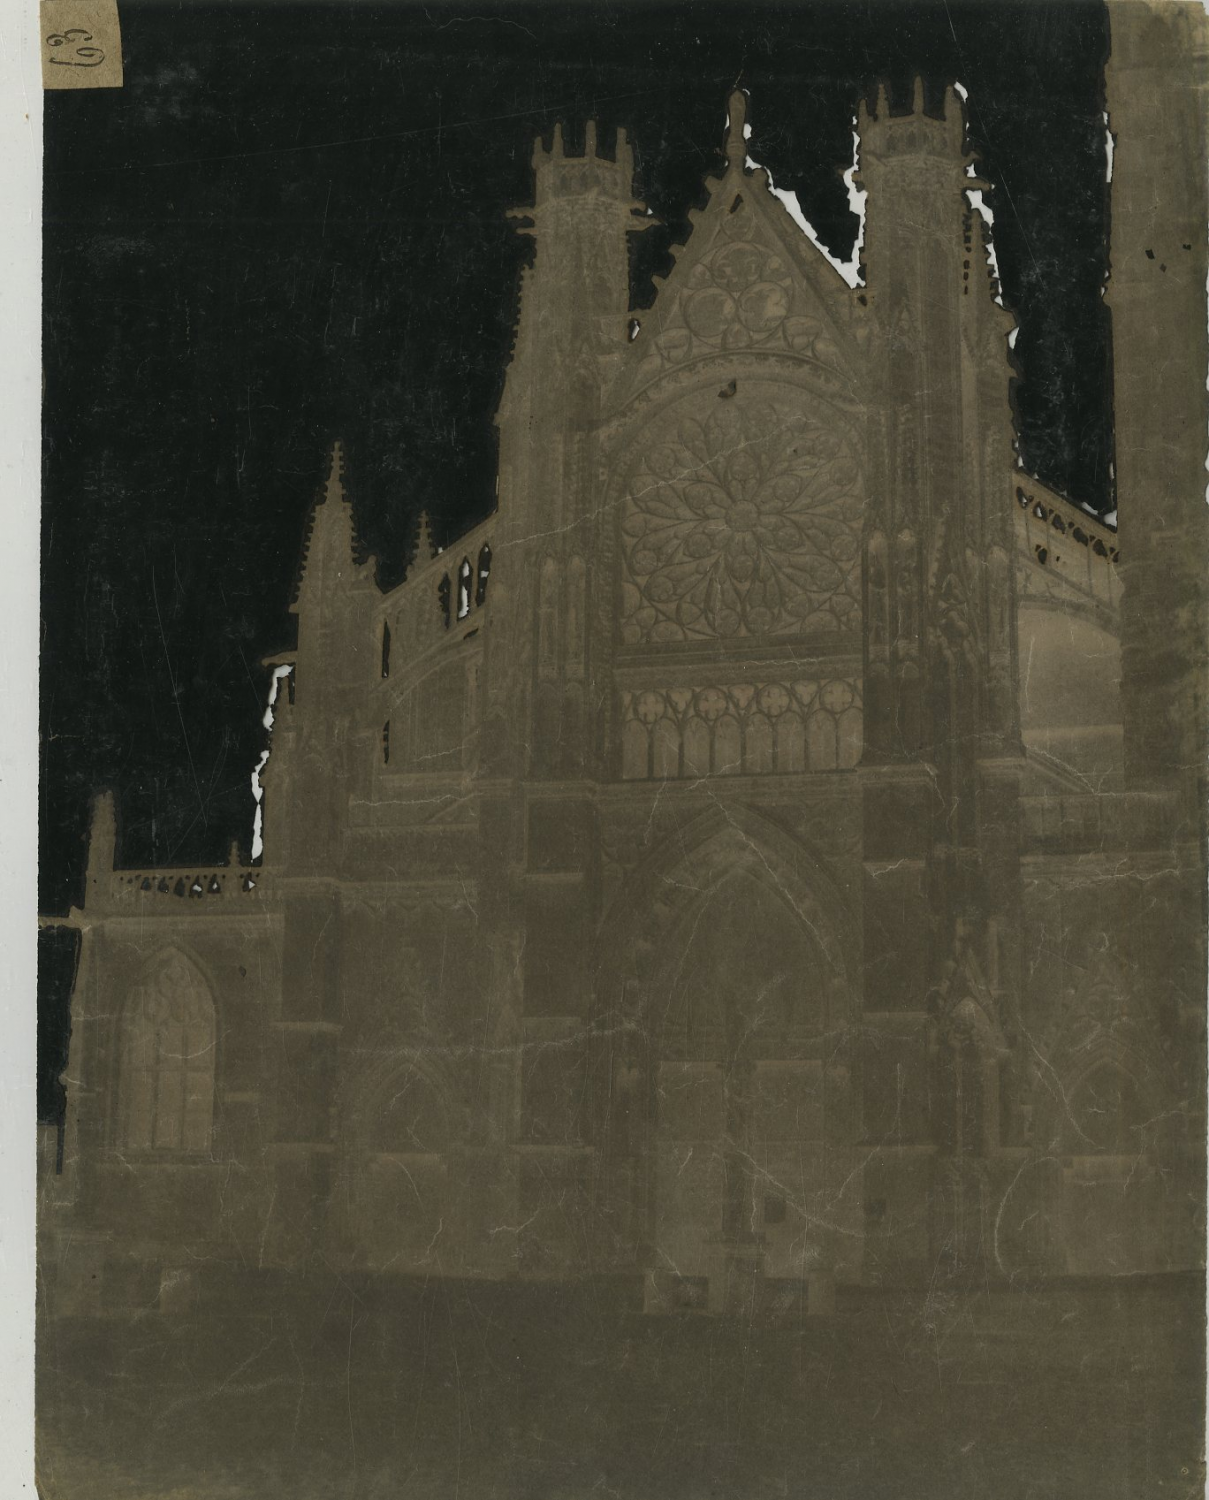 Image of Eugène Nicolas: a waxed paper negative of Saint Jacques, Dieppe, ca. 1855